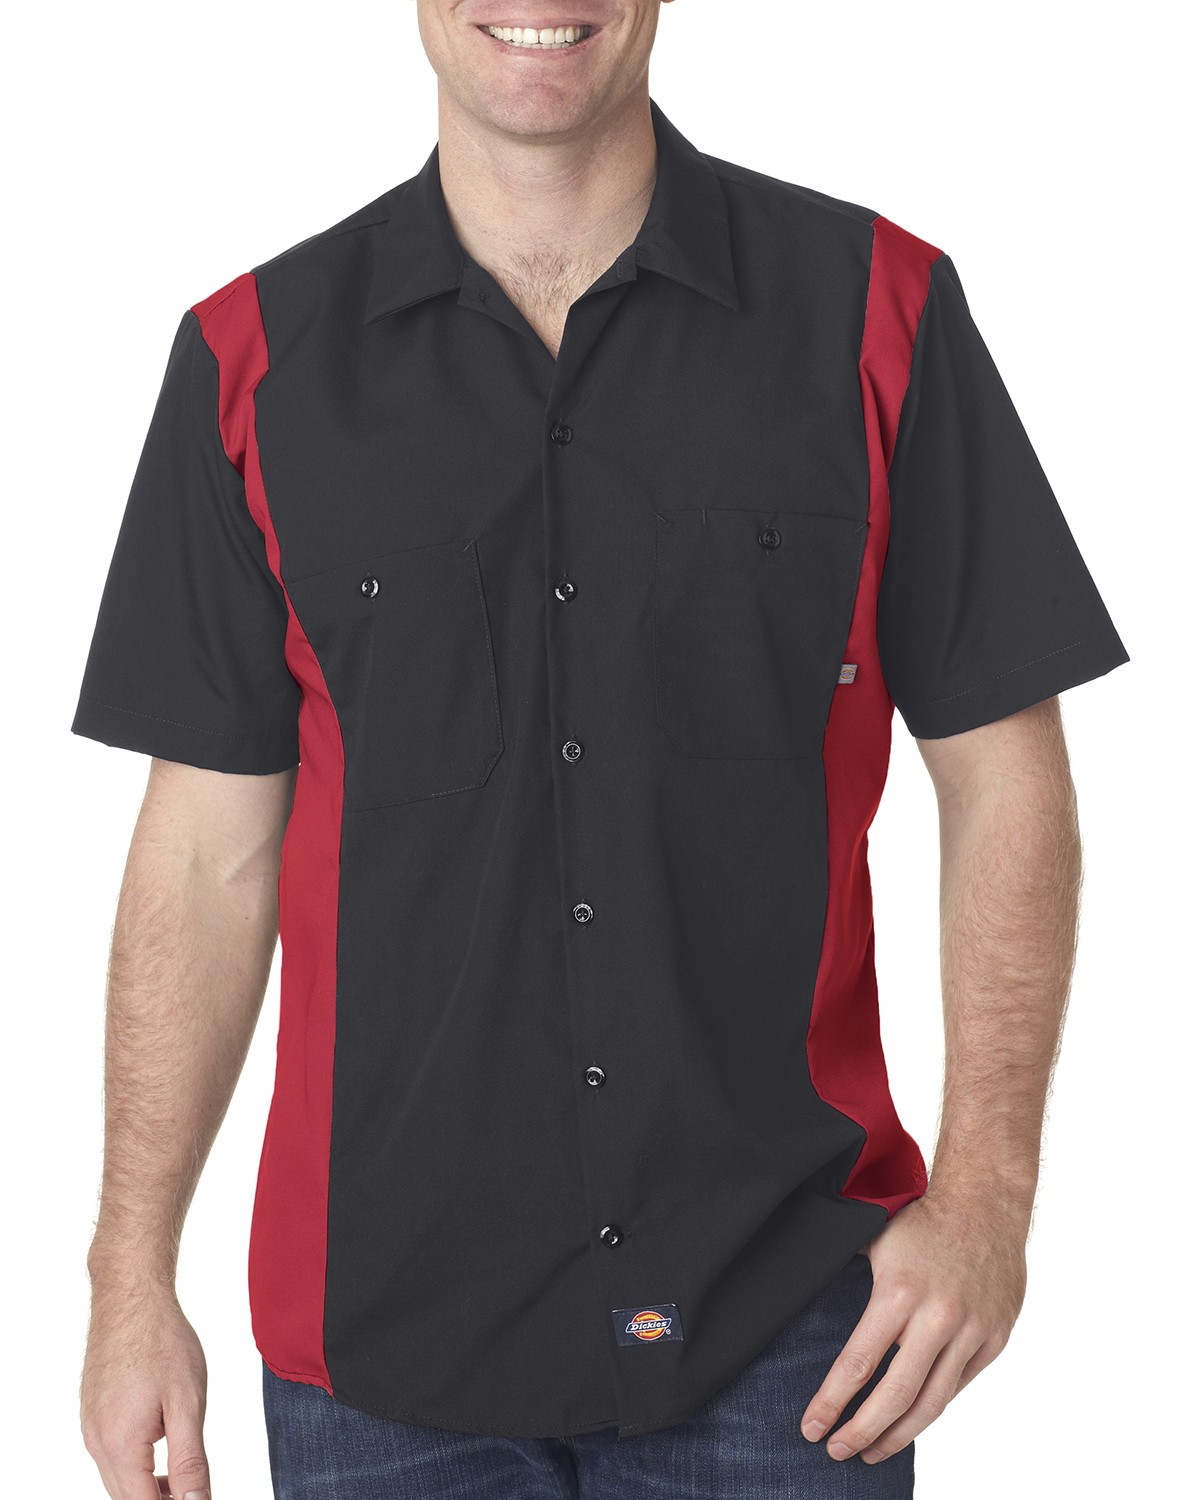 LS524 Dickies BLACK/ENG RED